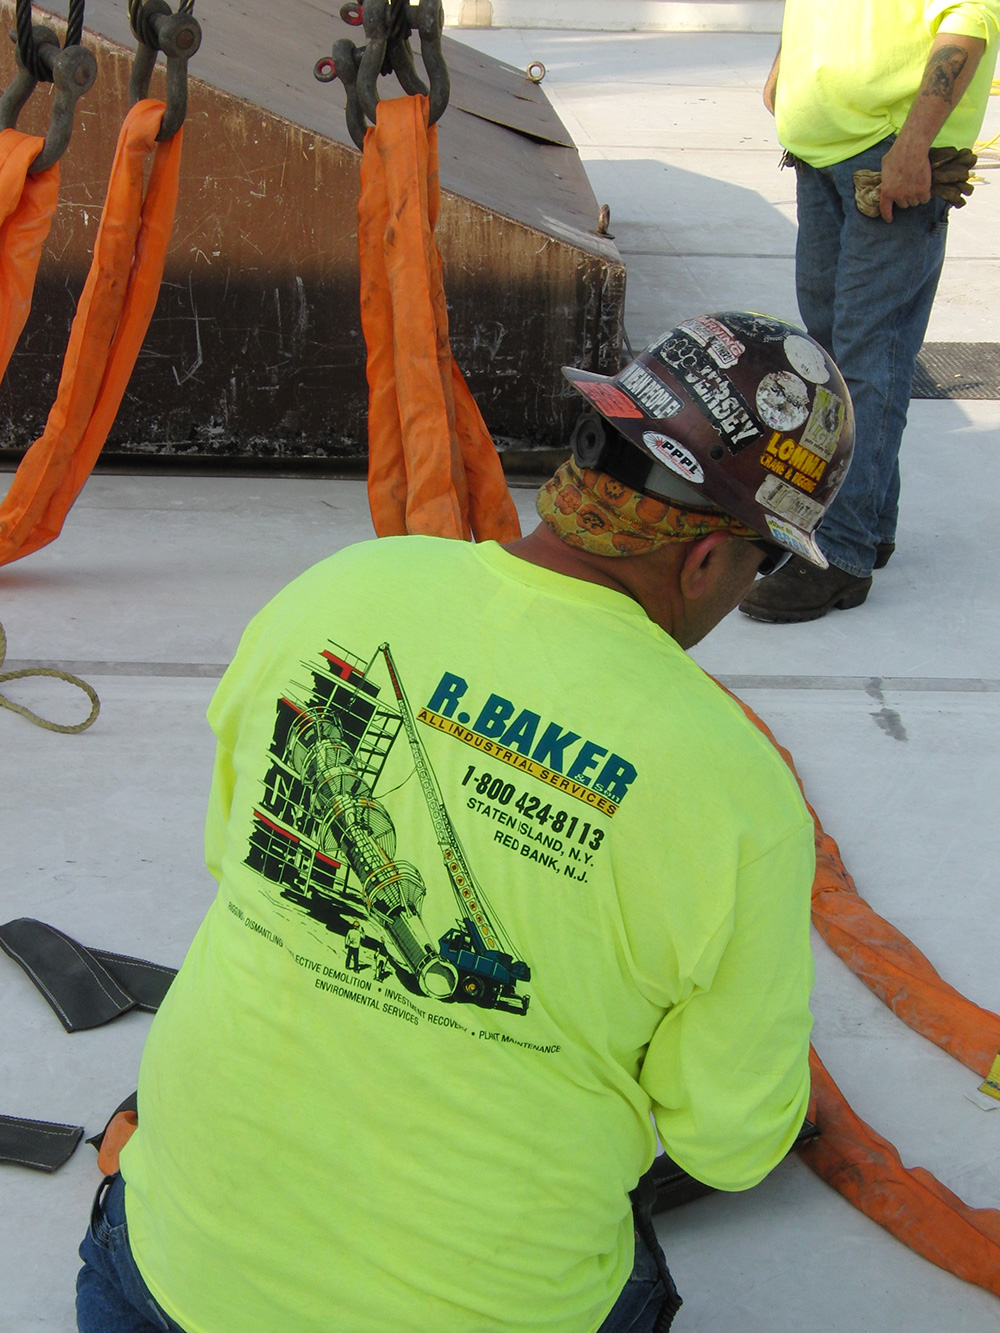 Rigging Contractor, Crane, NY,NJ, R. Baker & Son